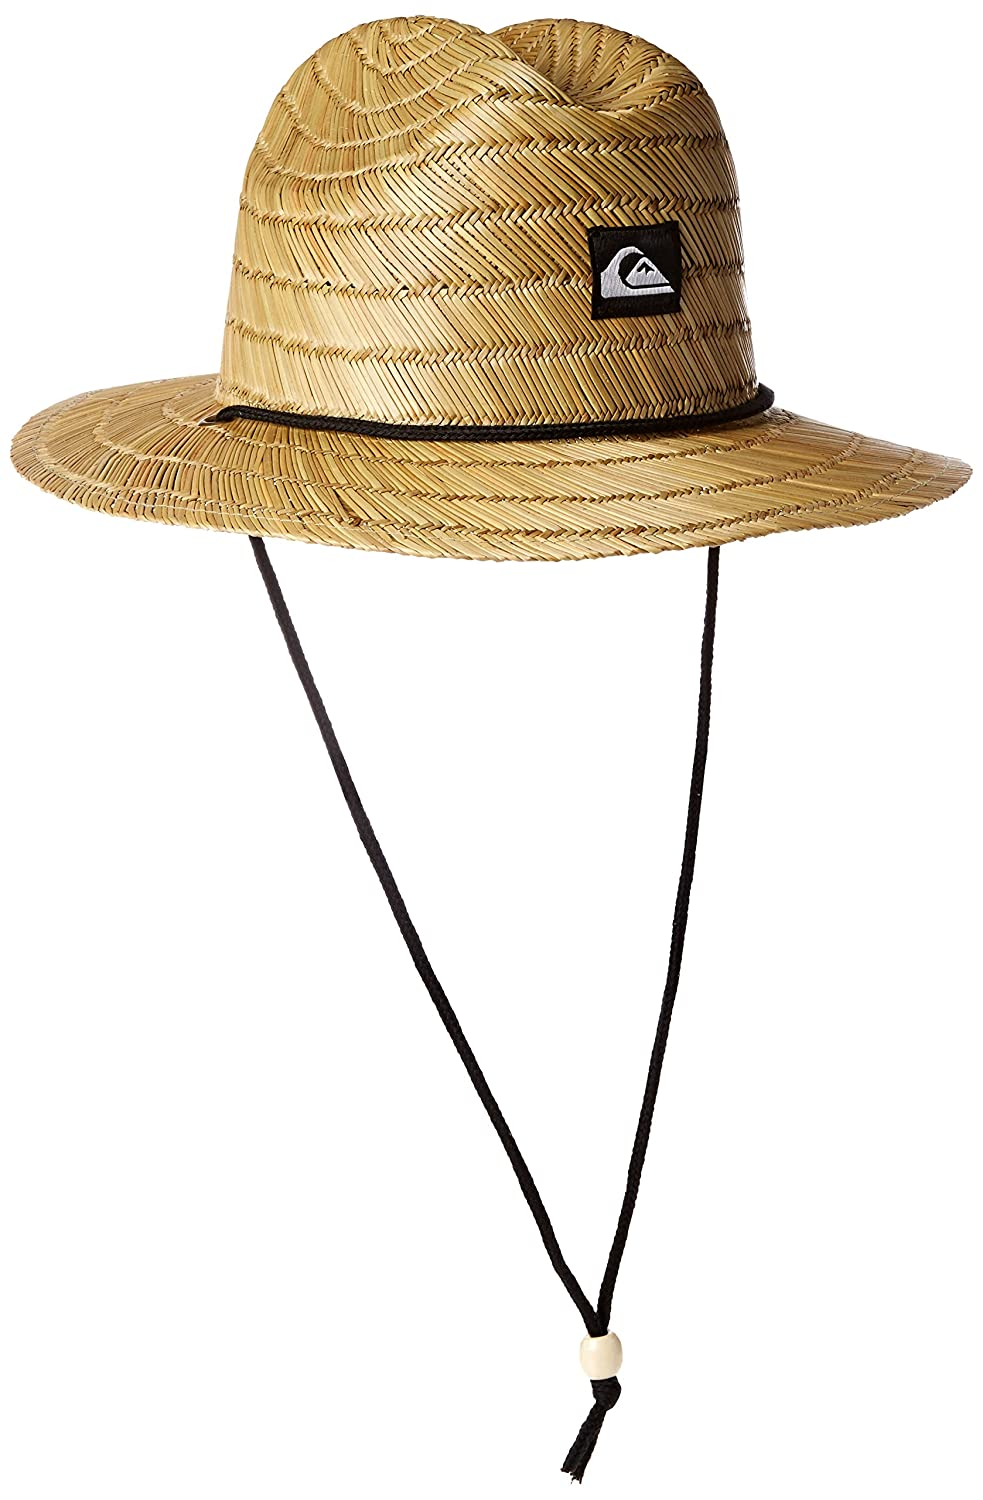 Quiksilver Mens Standard Pierside Slim Straw Hat Dark Brown L/XL AQYHA03741